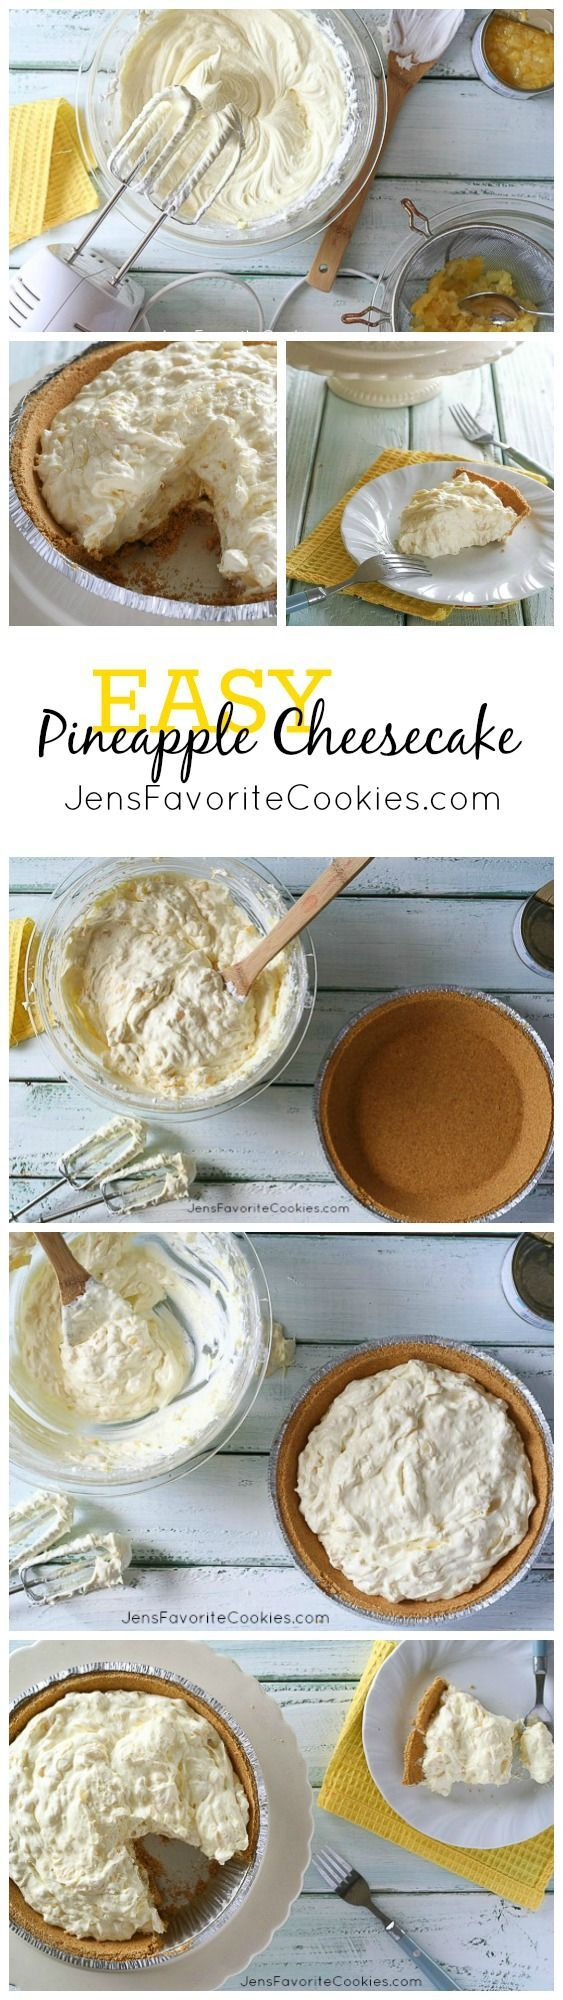 EASY No-Bake Pineapple Cheesecake from JensFavoriteCookies.com